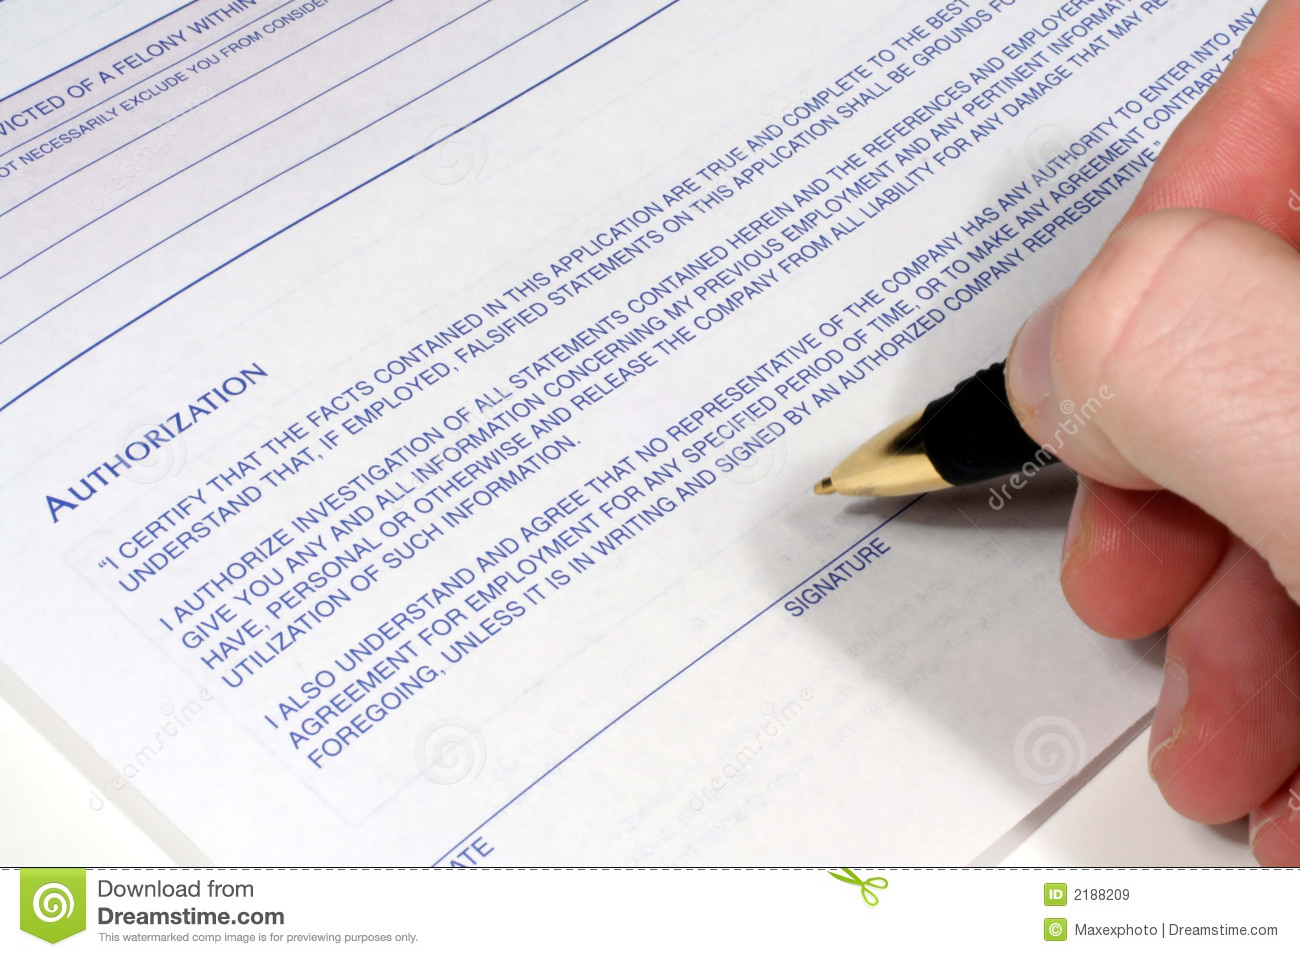 This Is An Image Of A Hand With A Pen Signing An Authroization Form